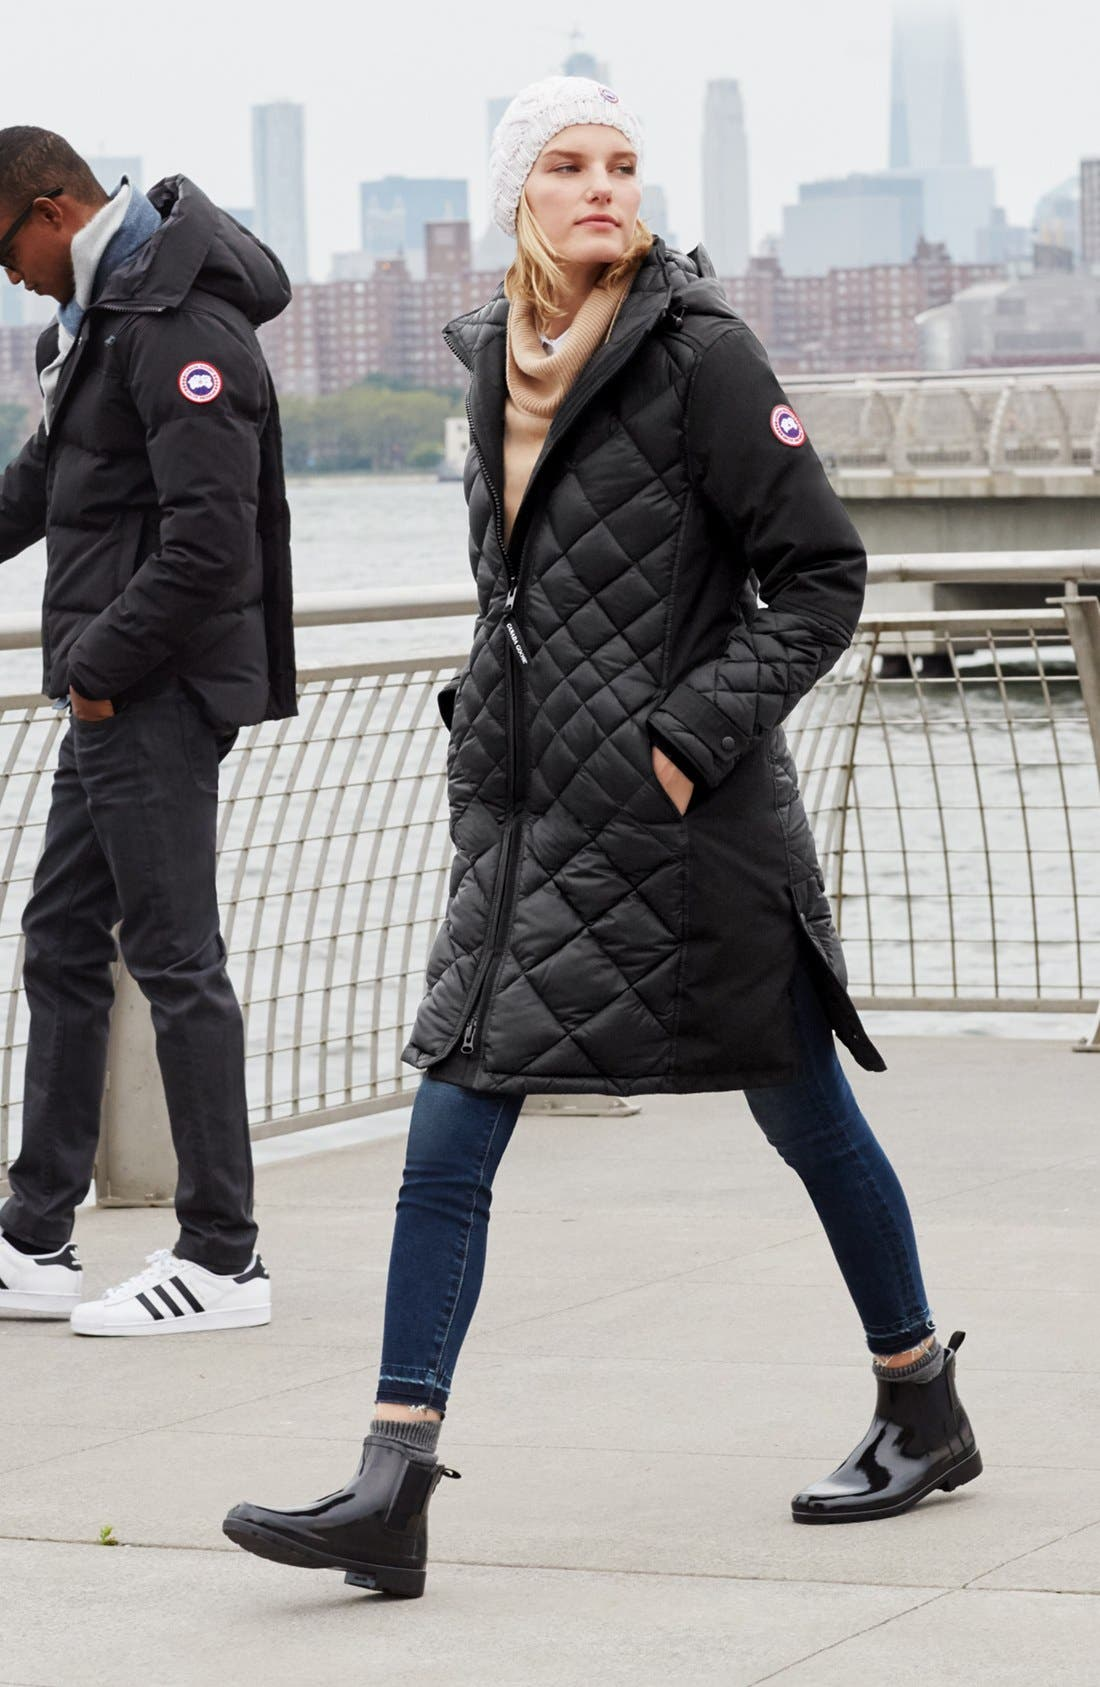 Canada Goose Parka Outfit with Accessories